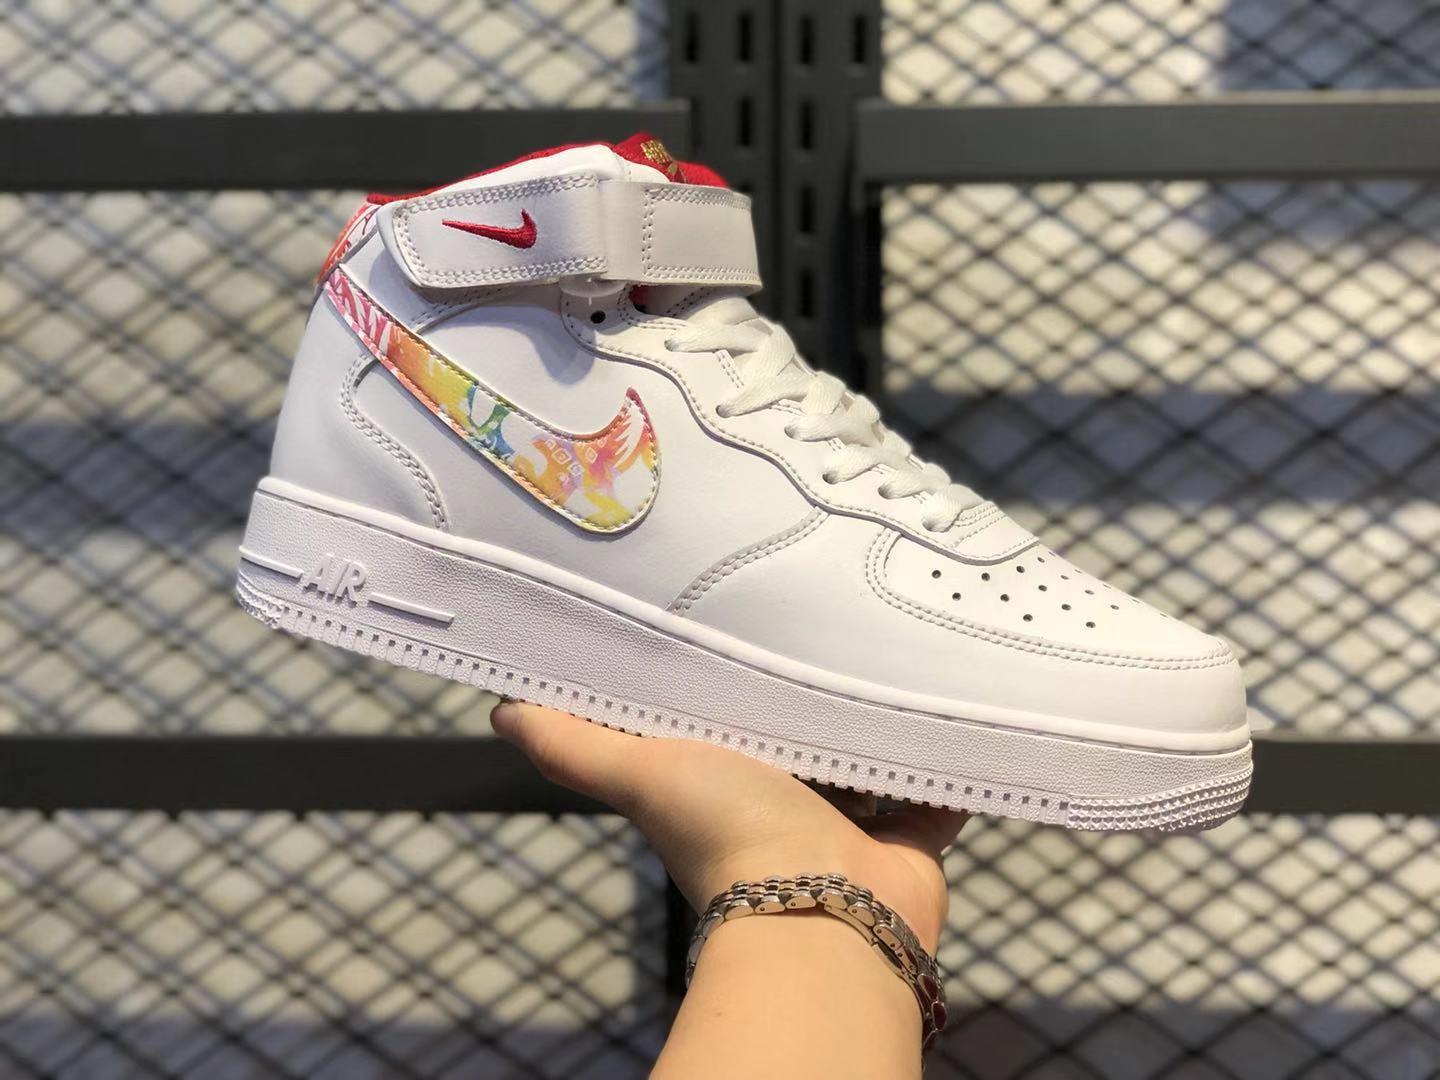 Nike Air Force 1 Mid White/Multi-Color-Red CU2980-192 For Online Sale